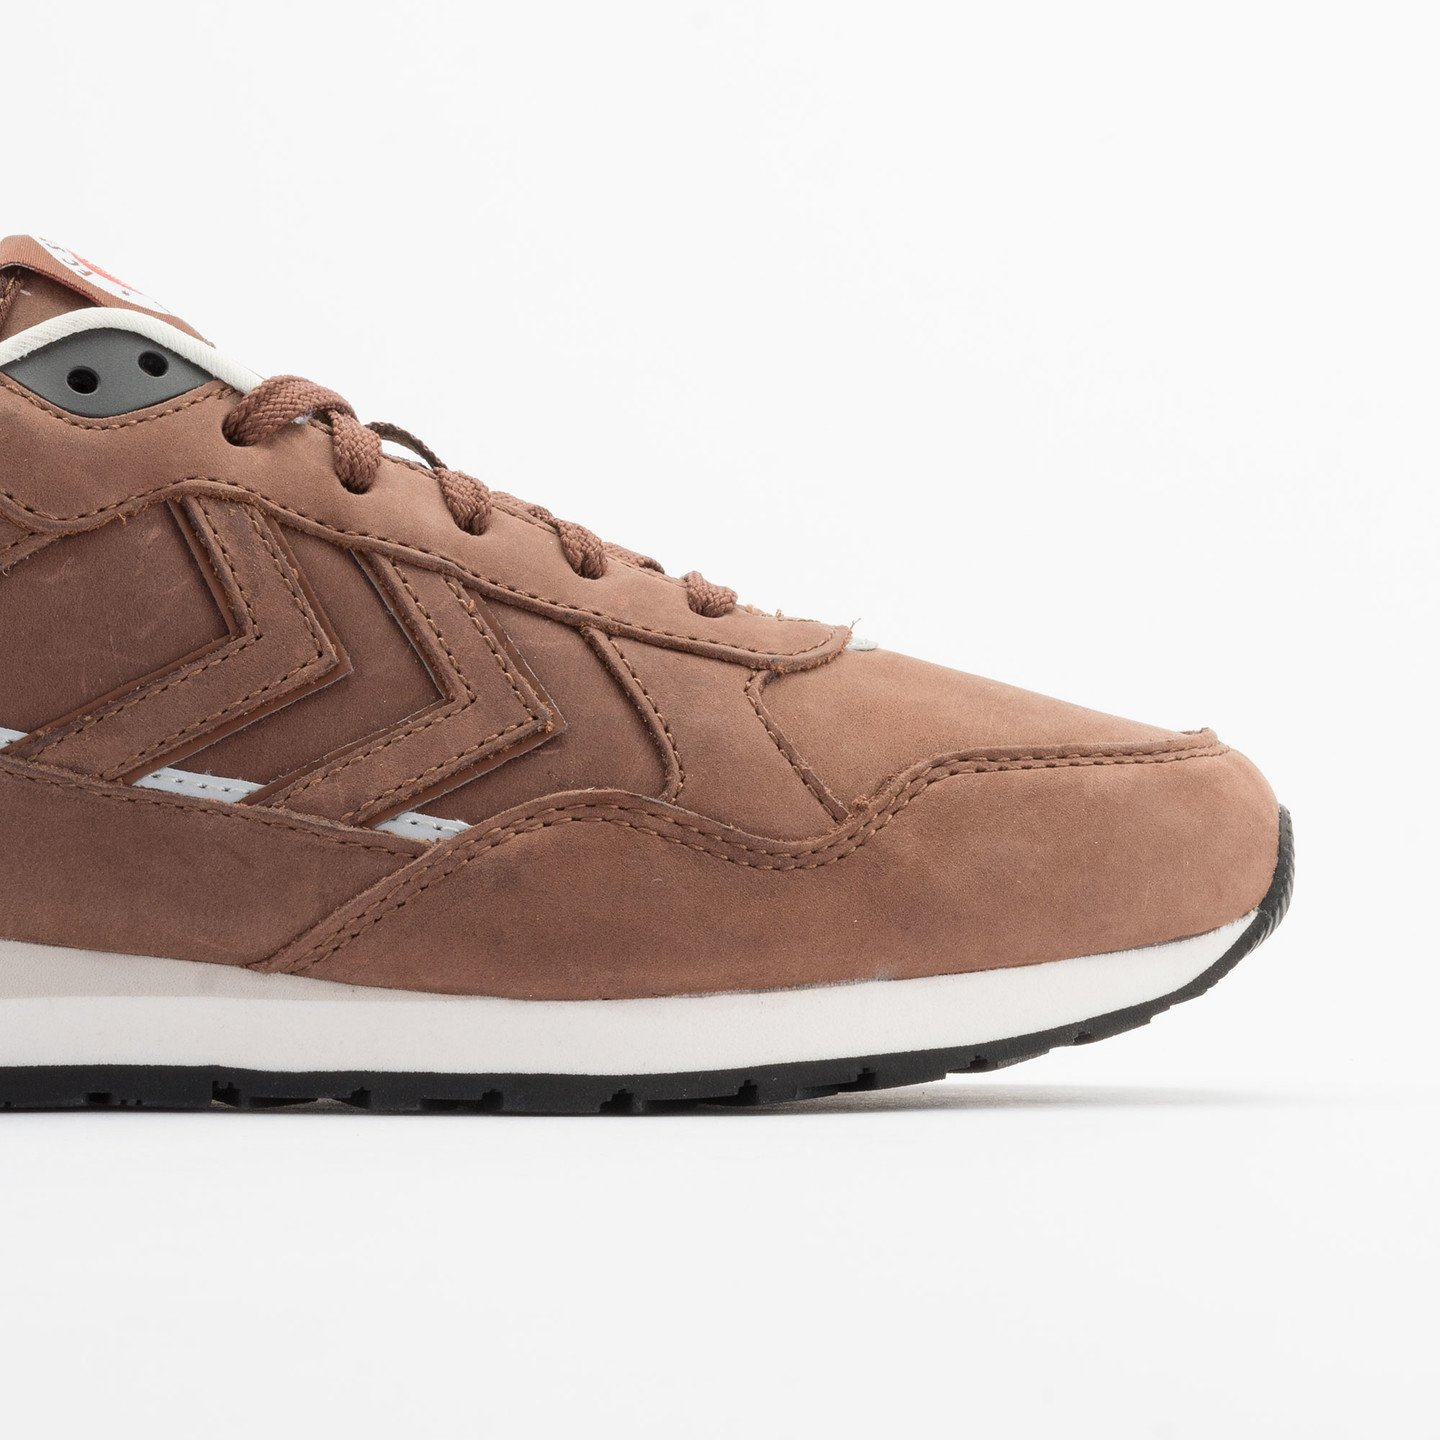 Hummel Marathona Low x St.Pauli Dark Brown 63-821-8225-41